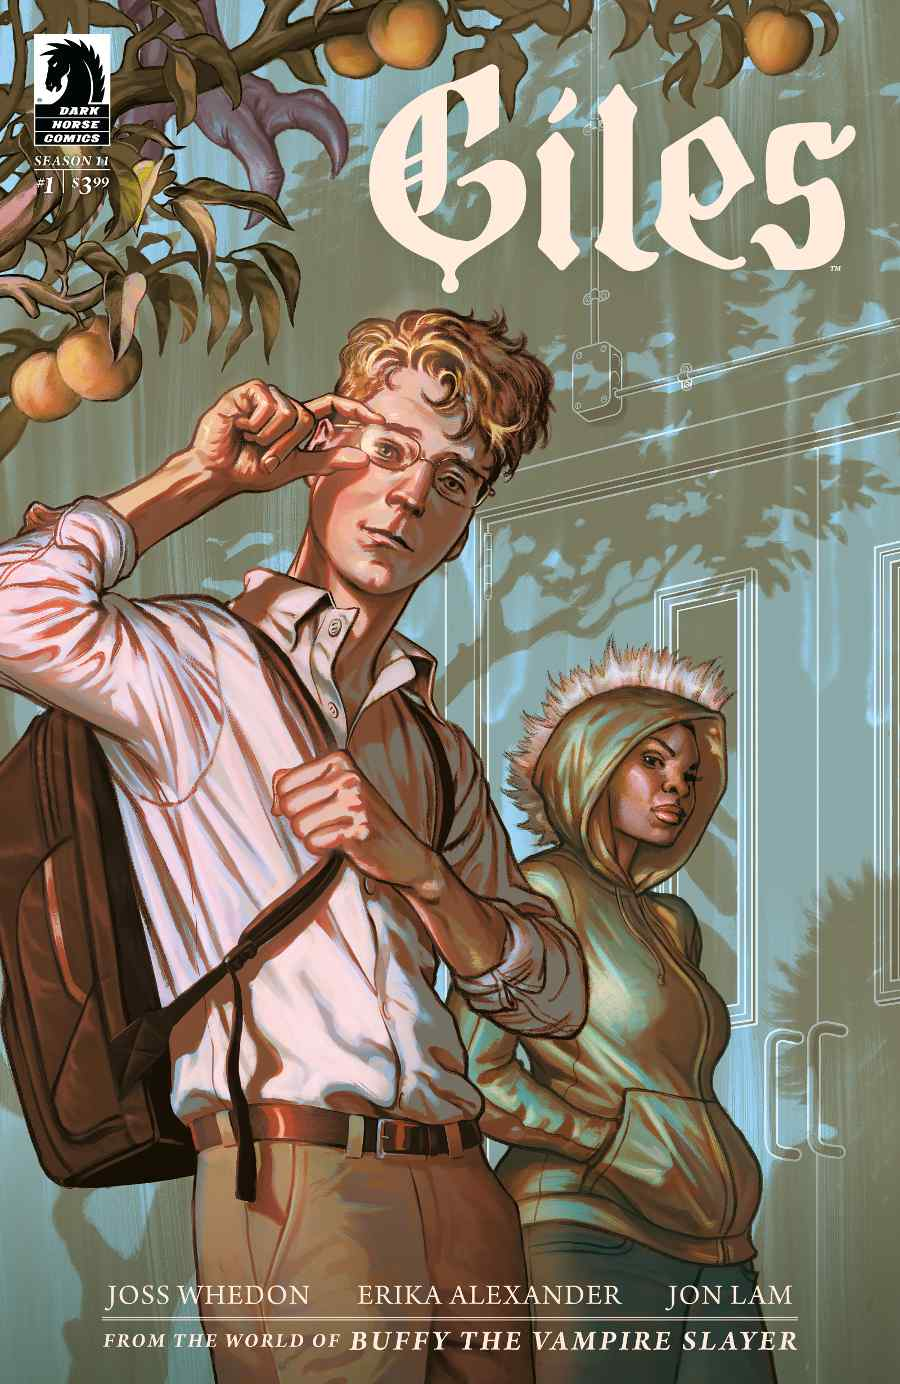 joss-whedon-is-writing-a-buffy-the-vampire-spinoff-comic-about-young-giles11